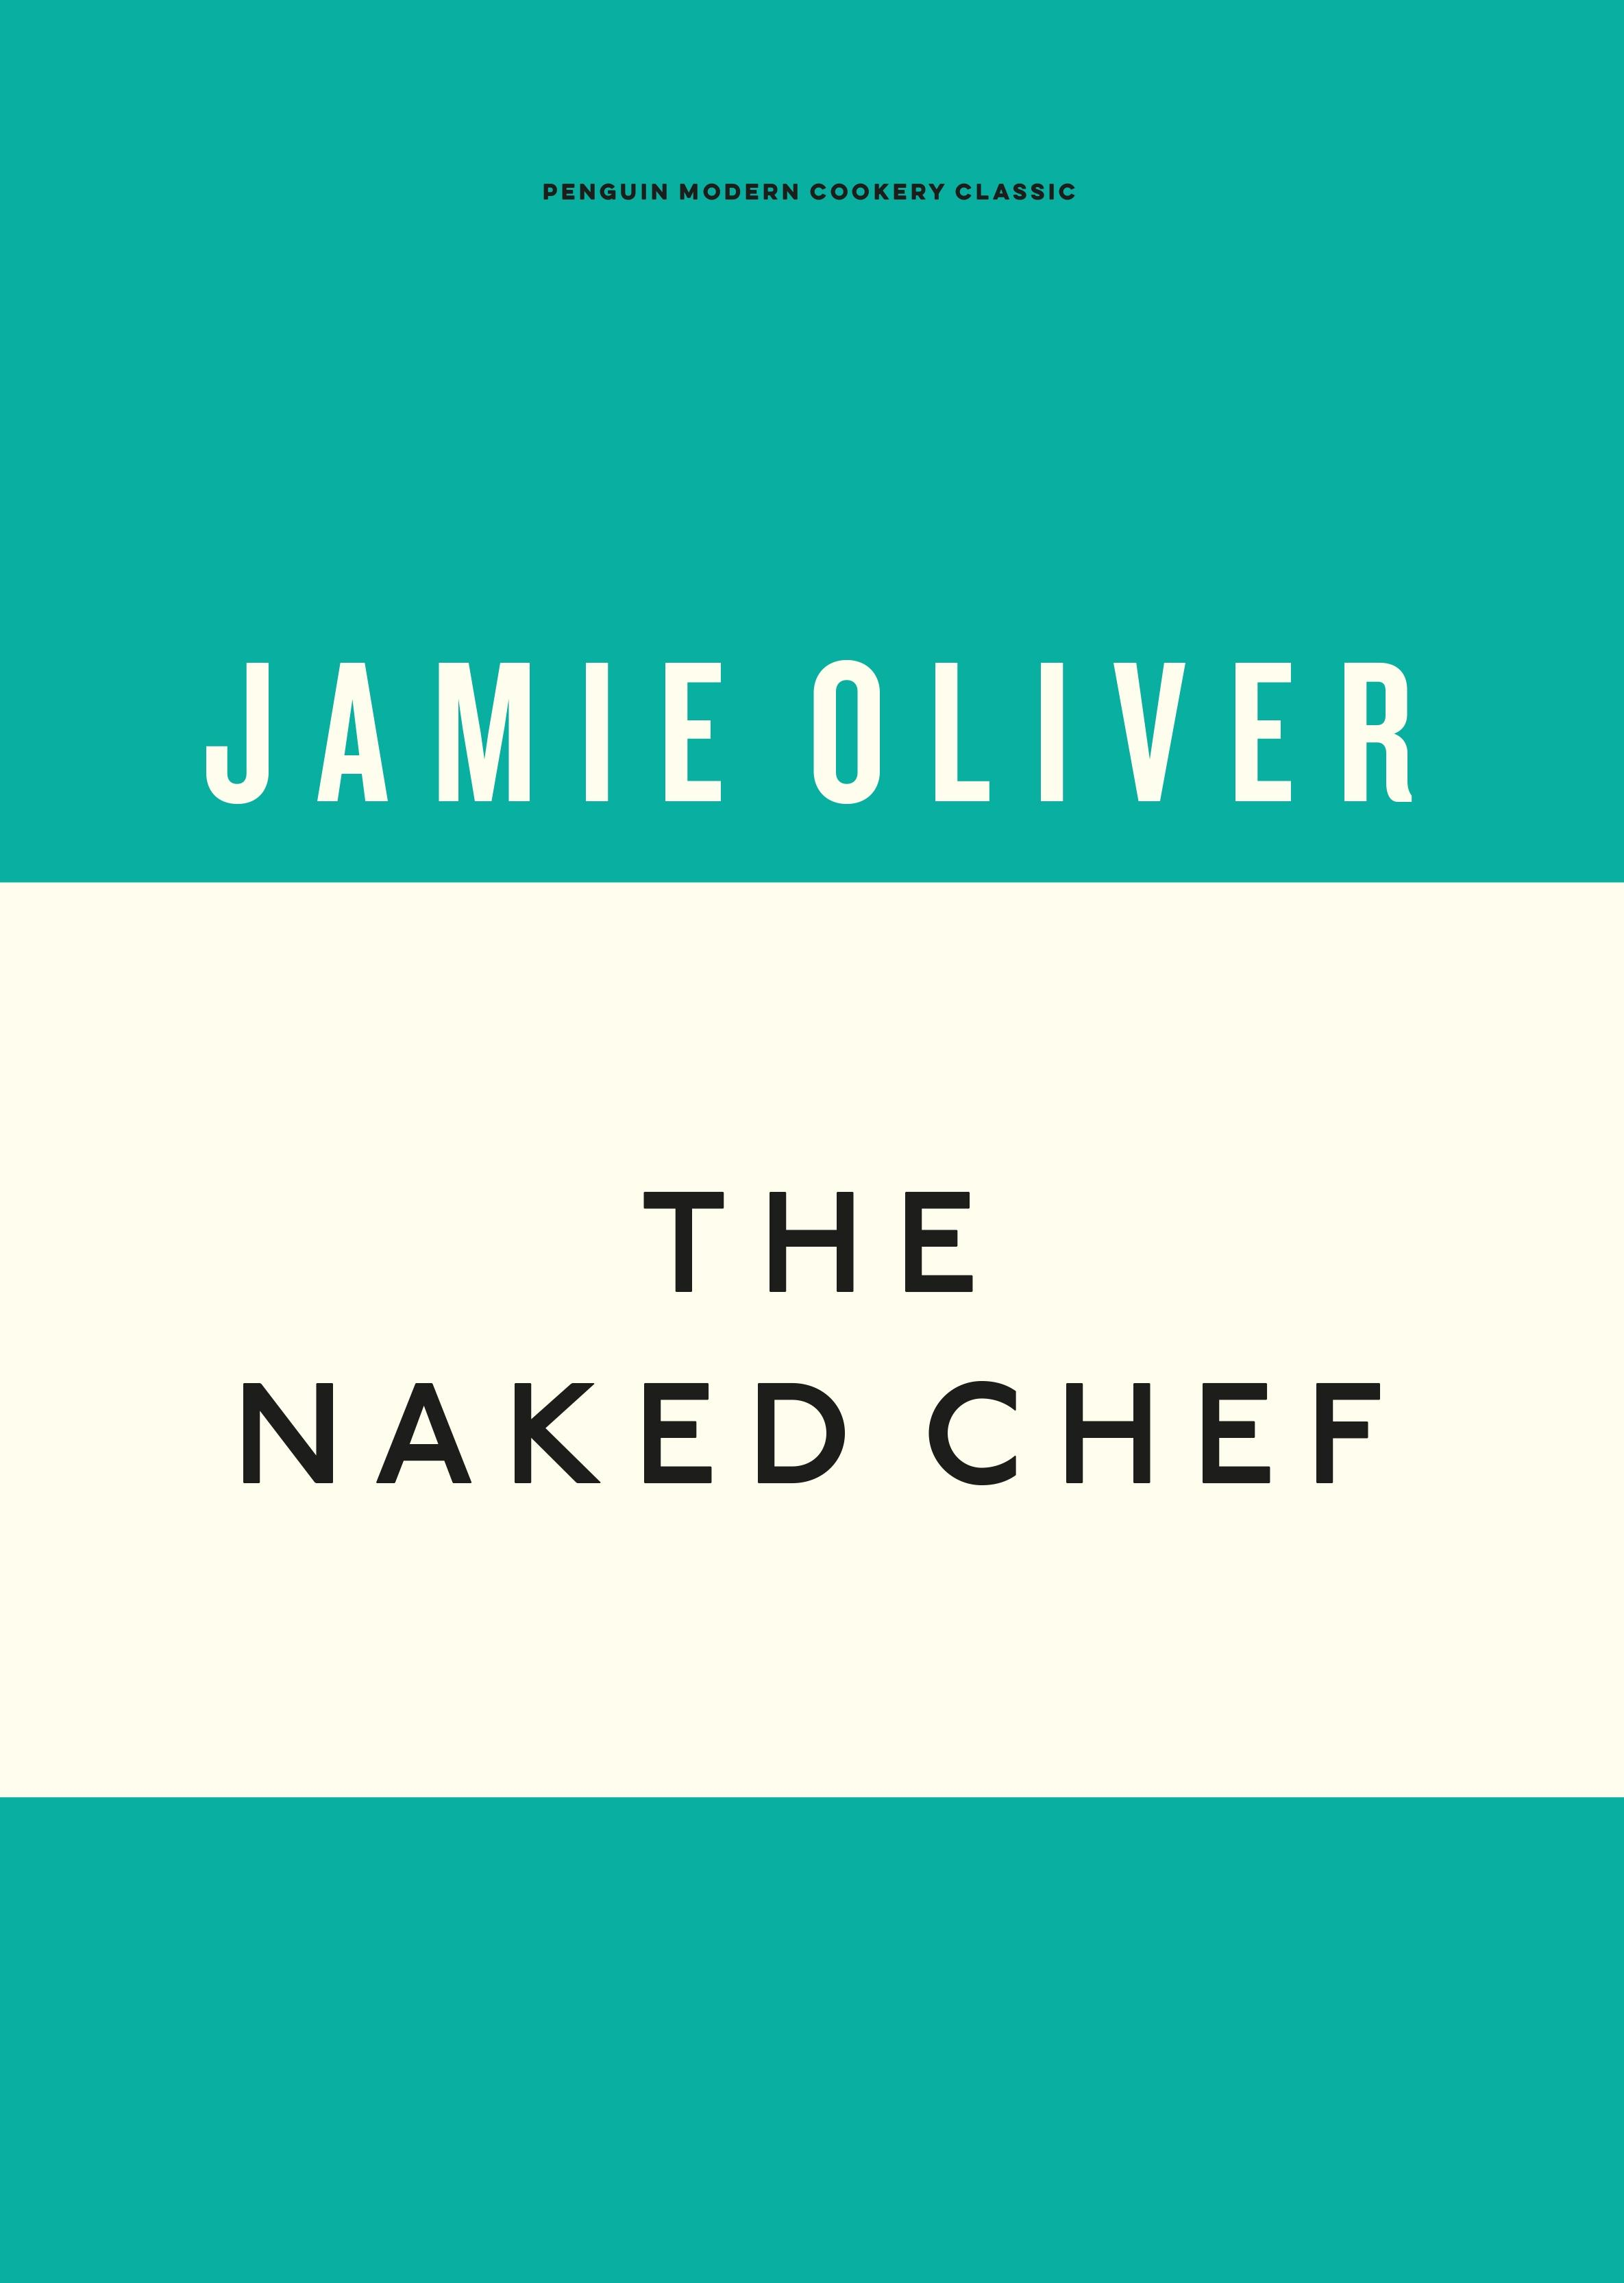 The Naked Chef (Anniversary Editions) by Jamie Oliver